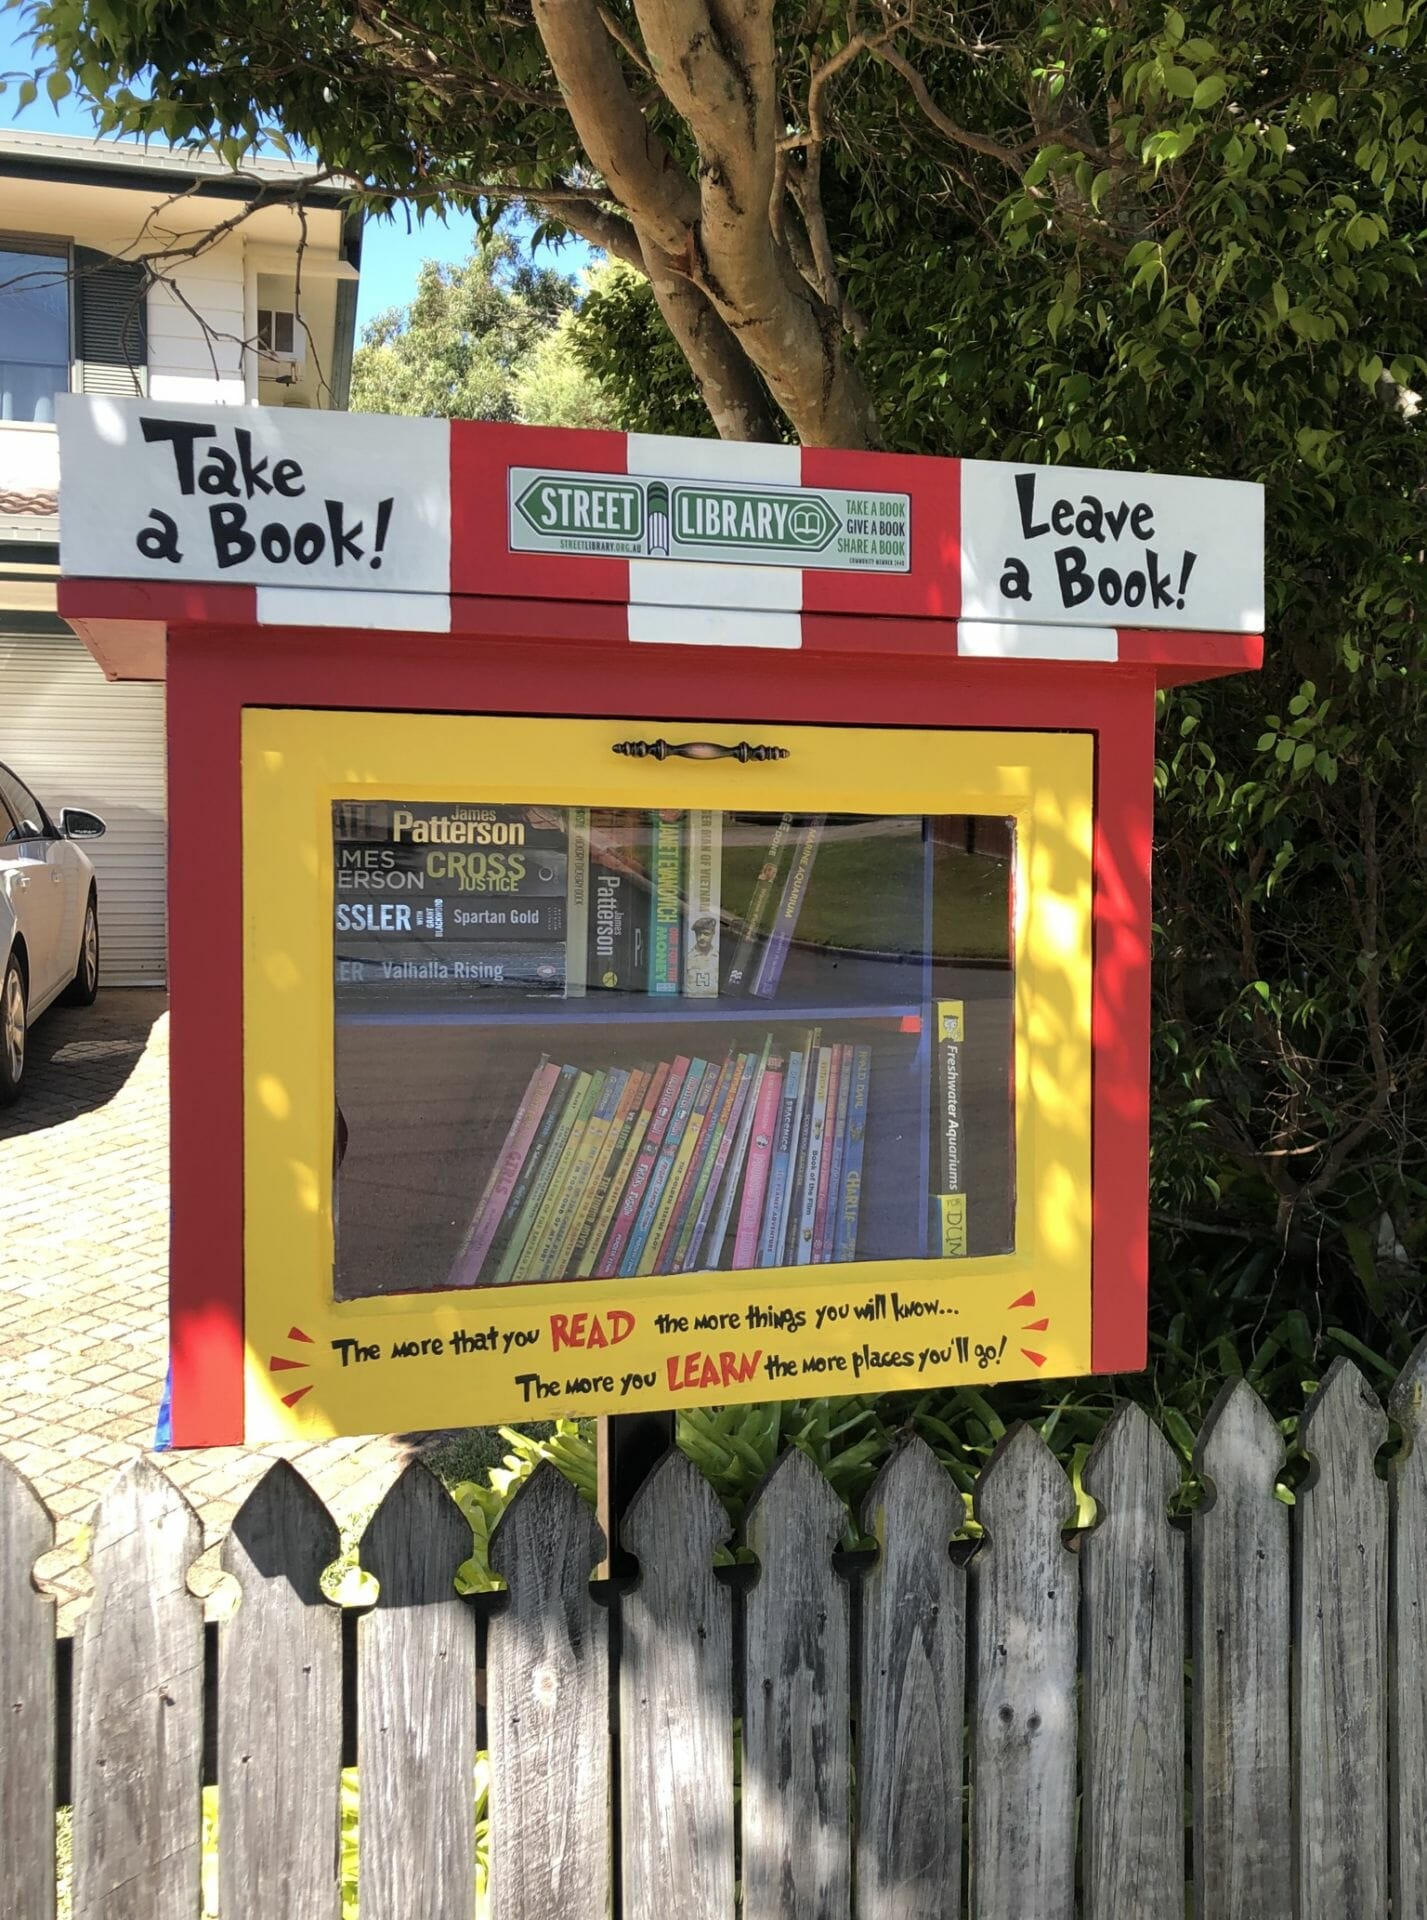 Currawong Drive Street Library